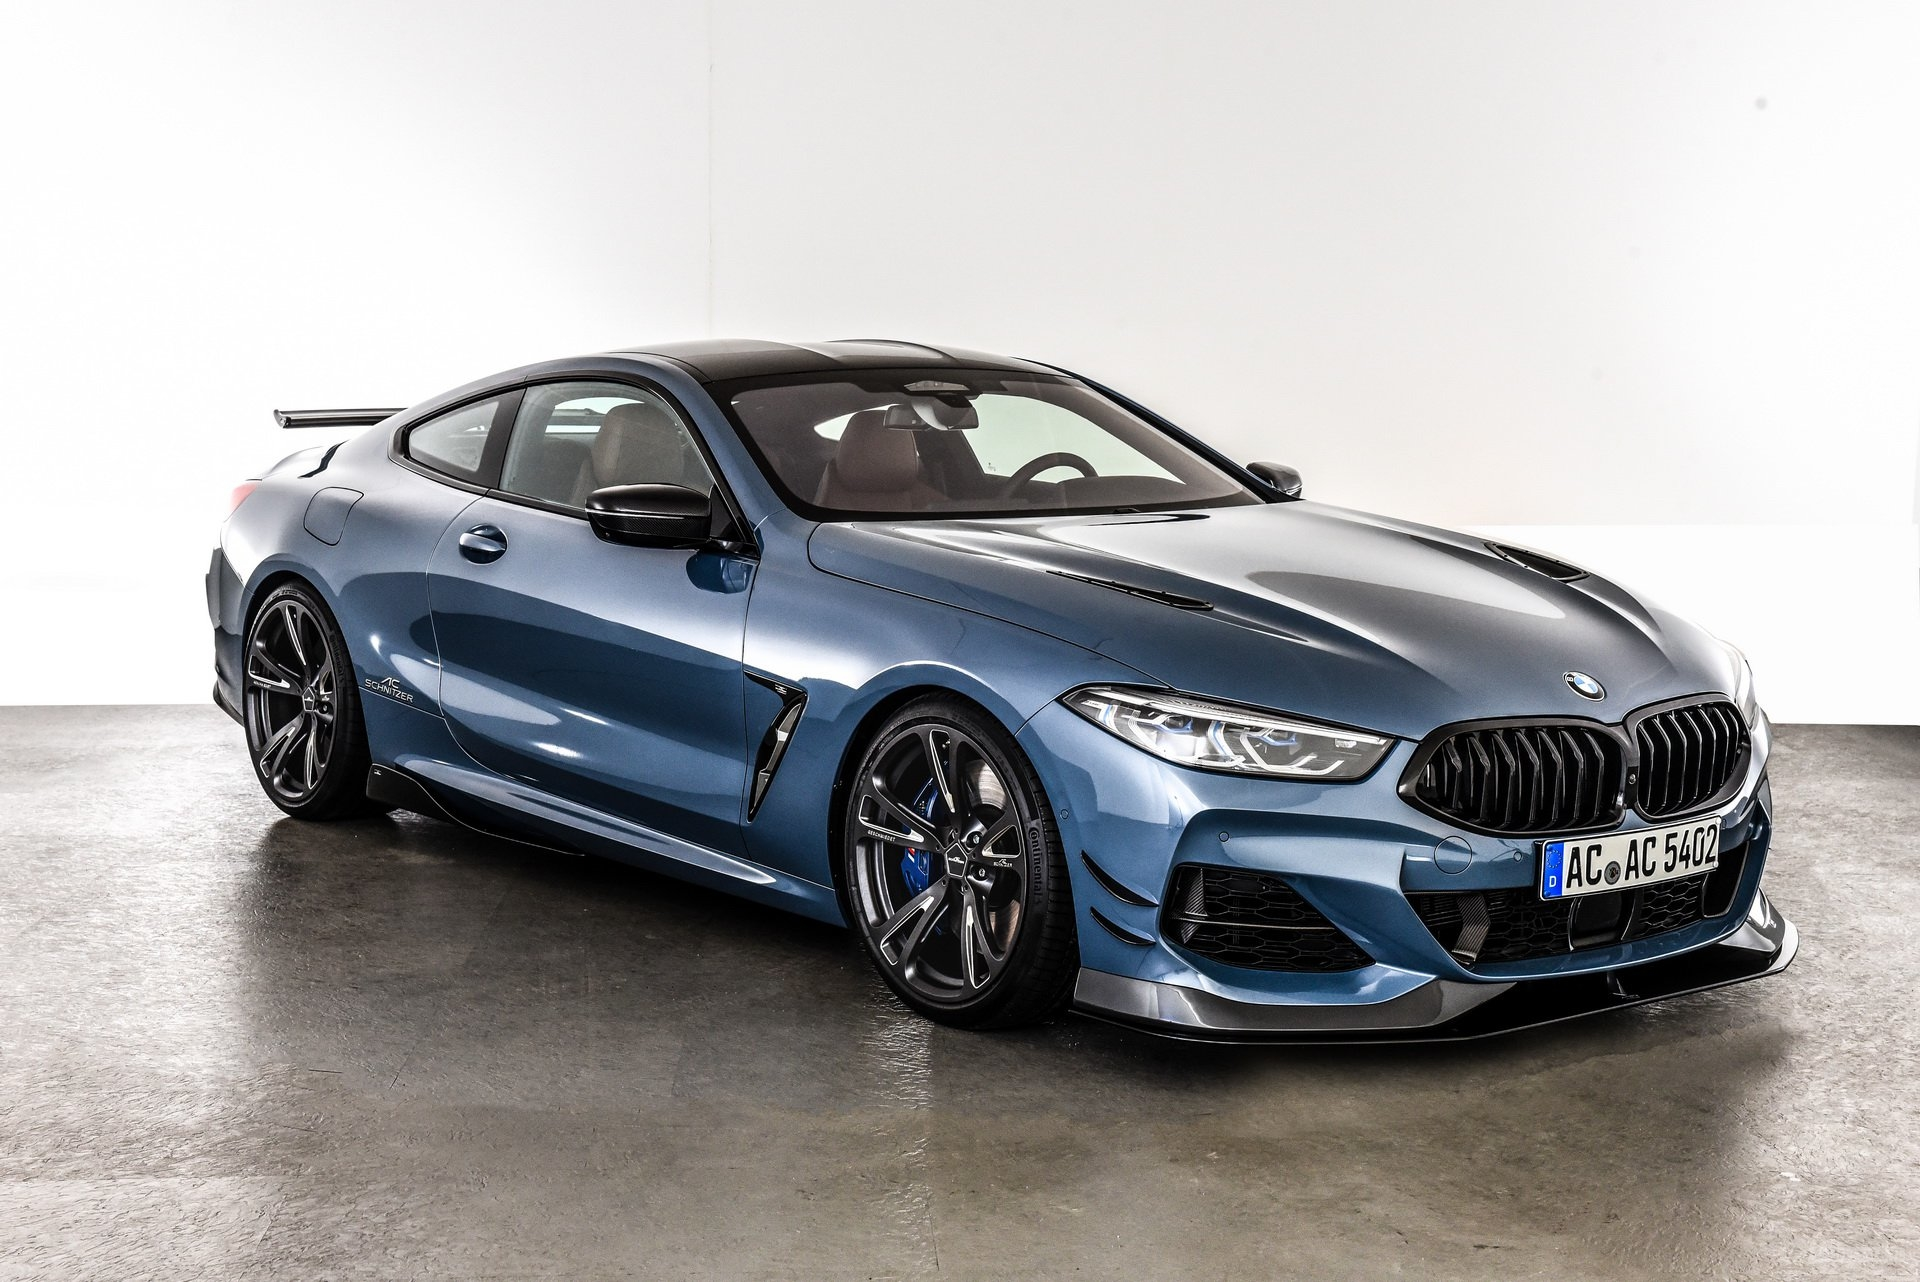 BMW 8 series coupe od AC Schnitzer